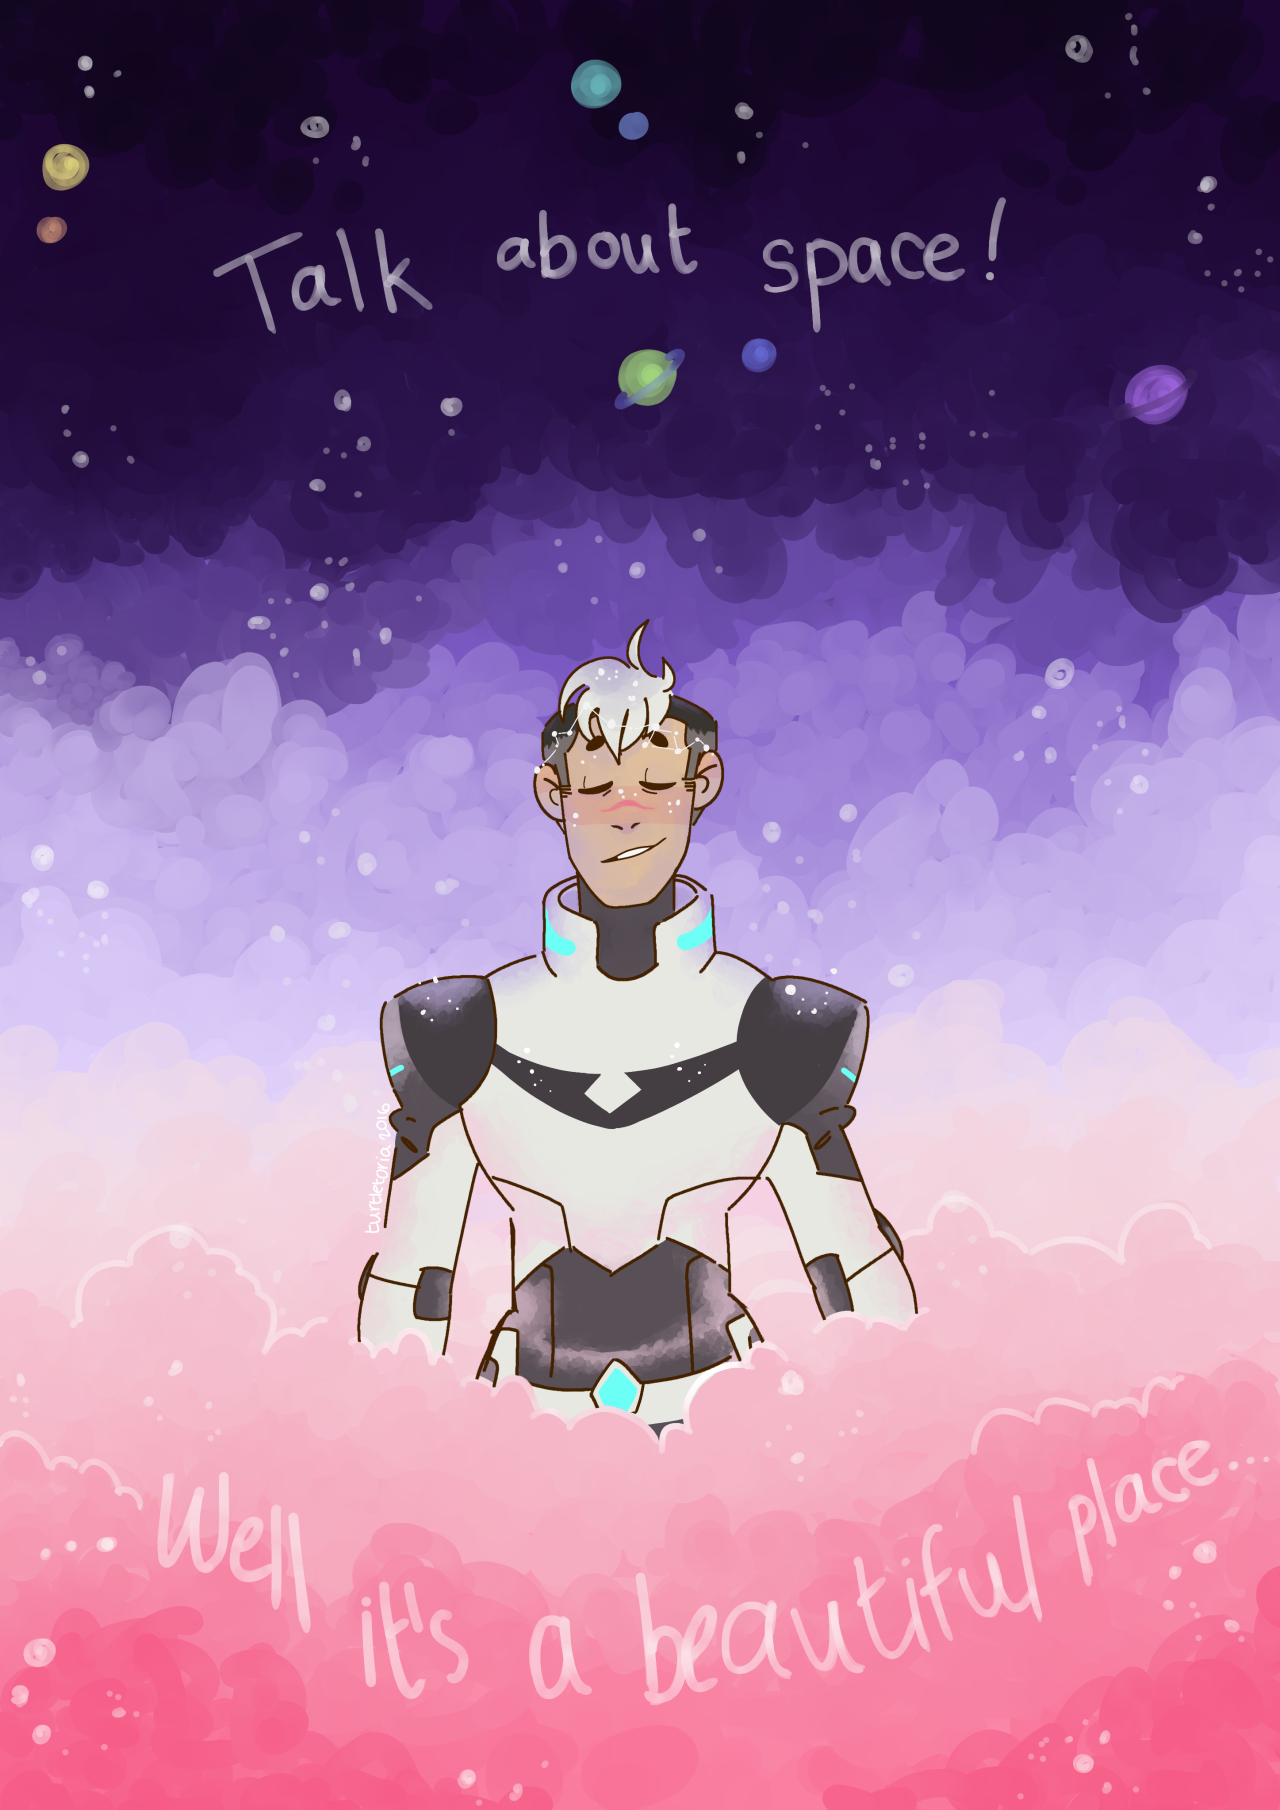 Matching iphone wallpaper tumblr - Voltron Background Tumblr